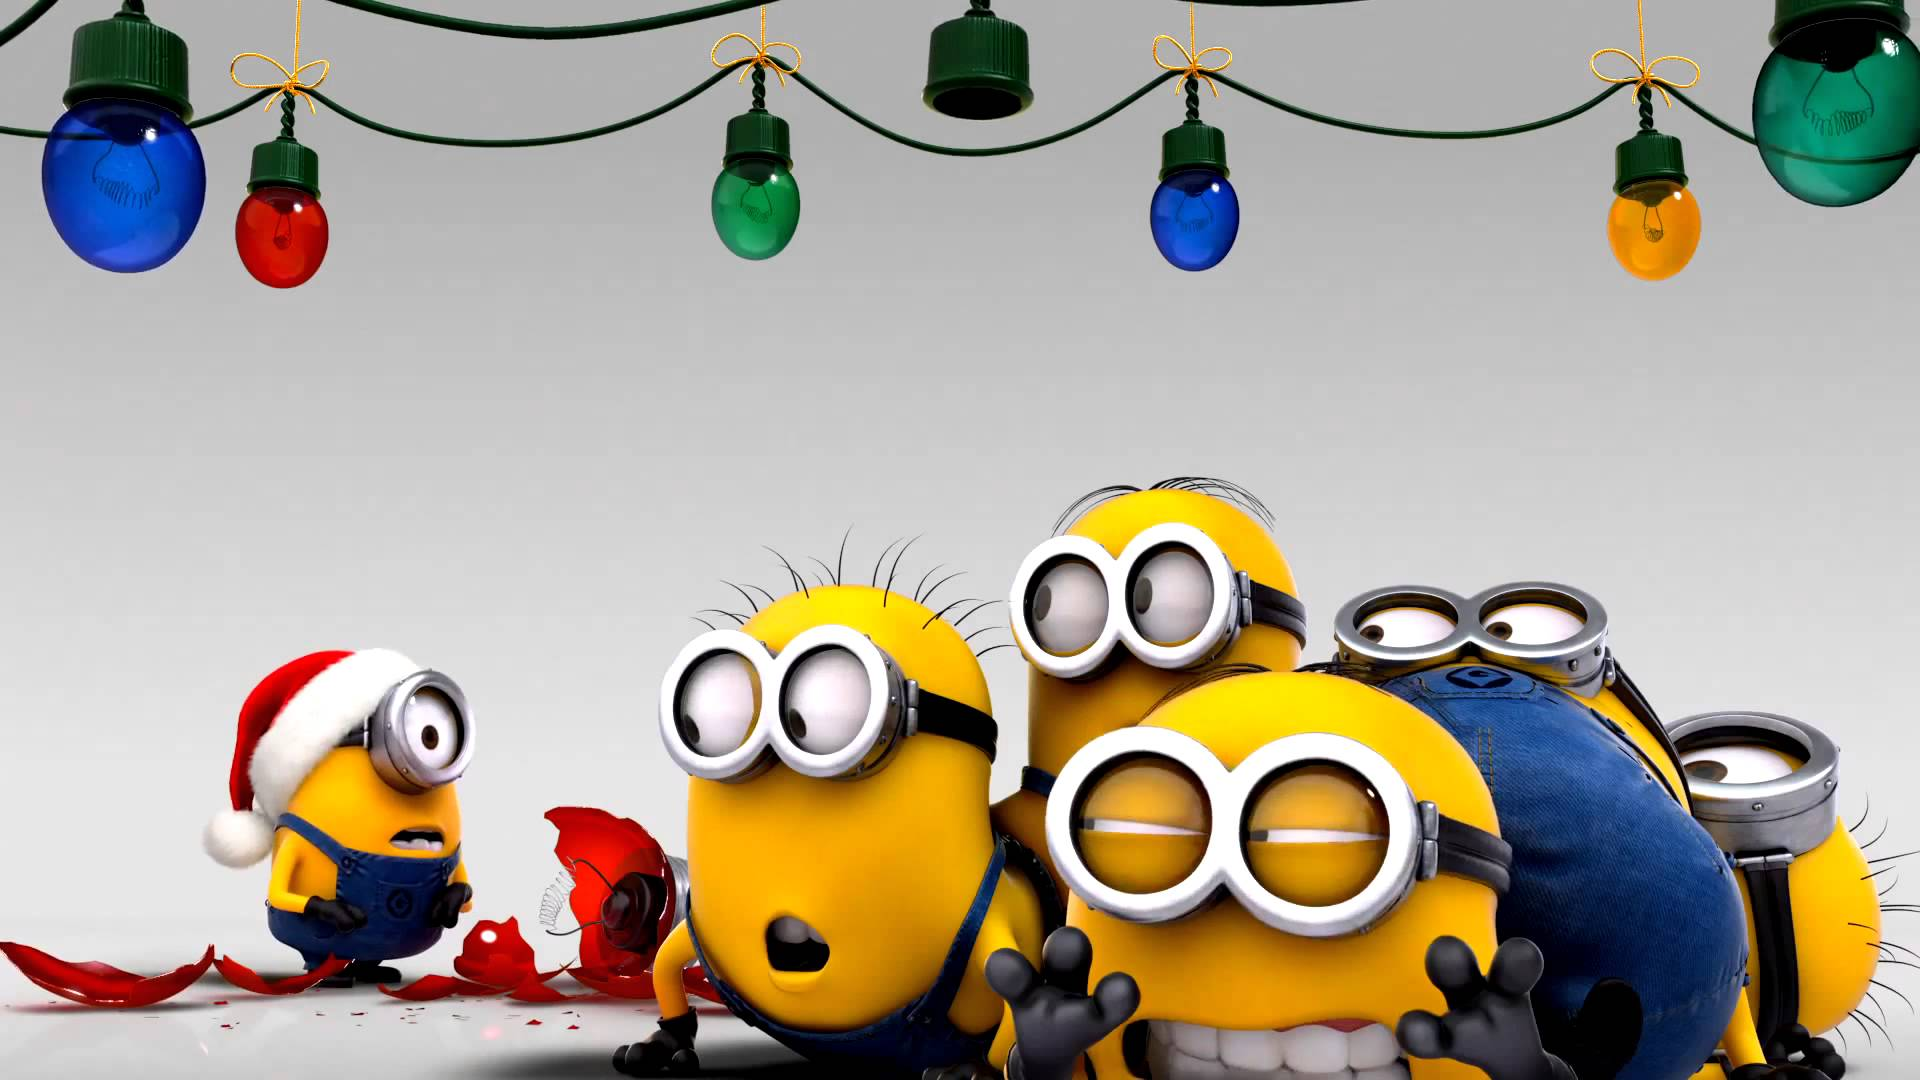 Minions decorating for christmas wallpaper - 1170566